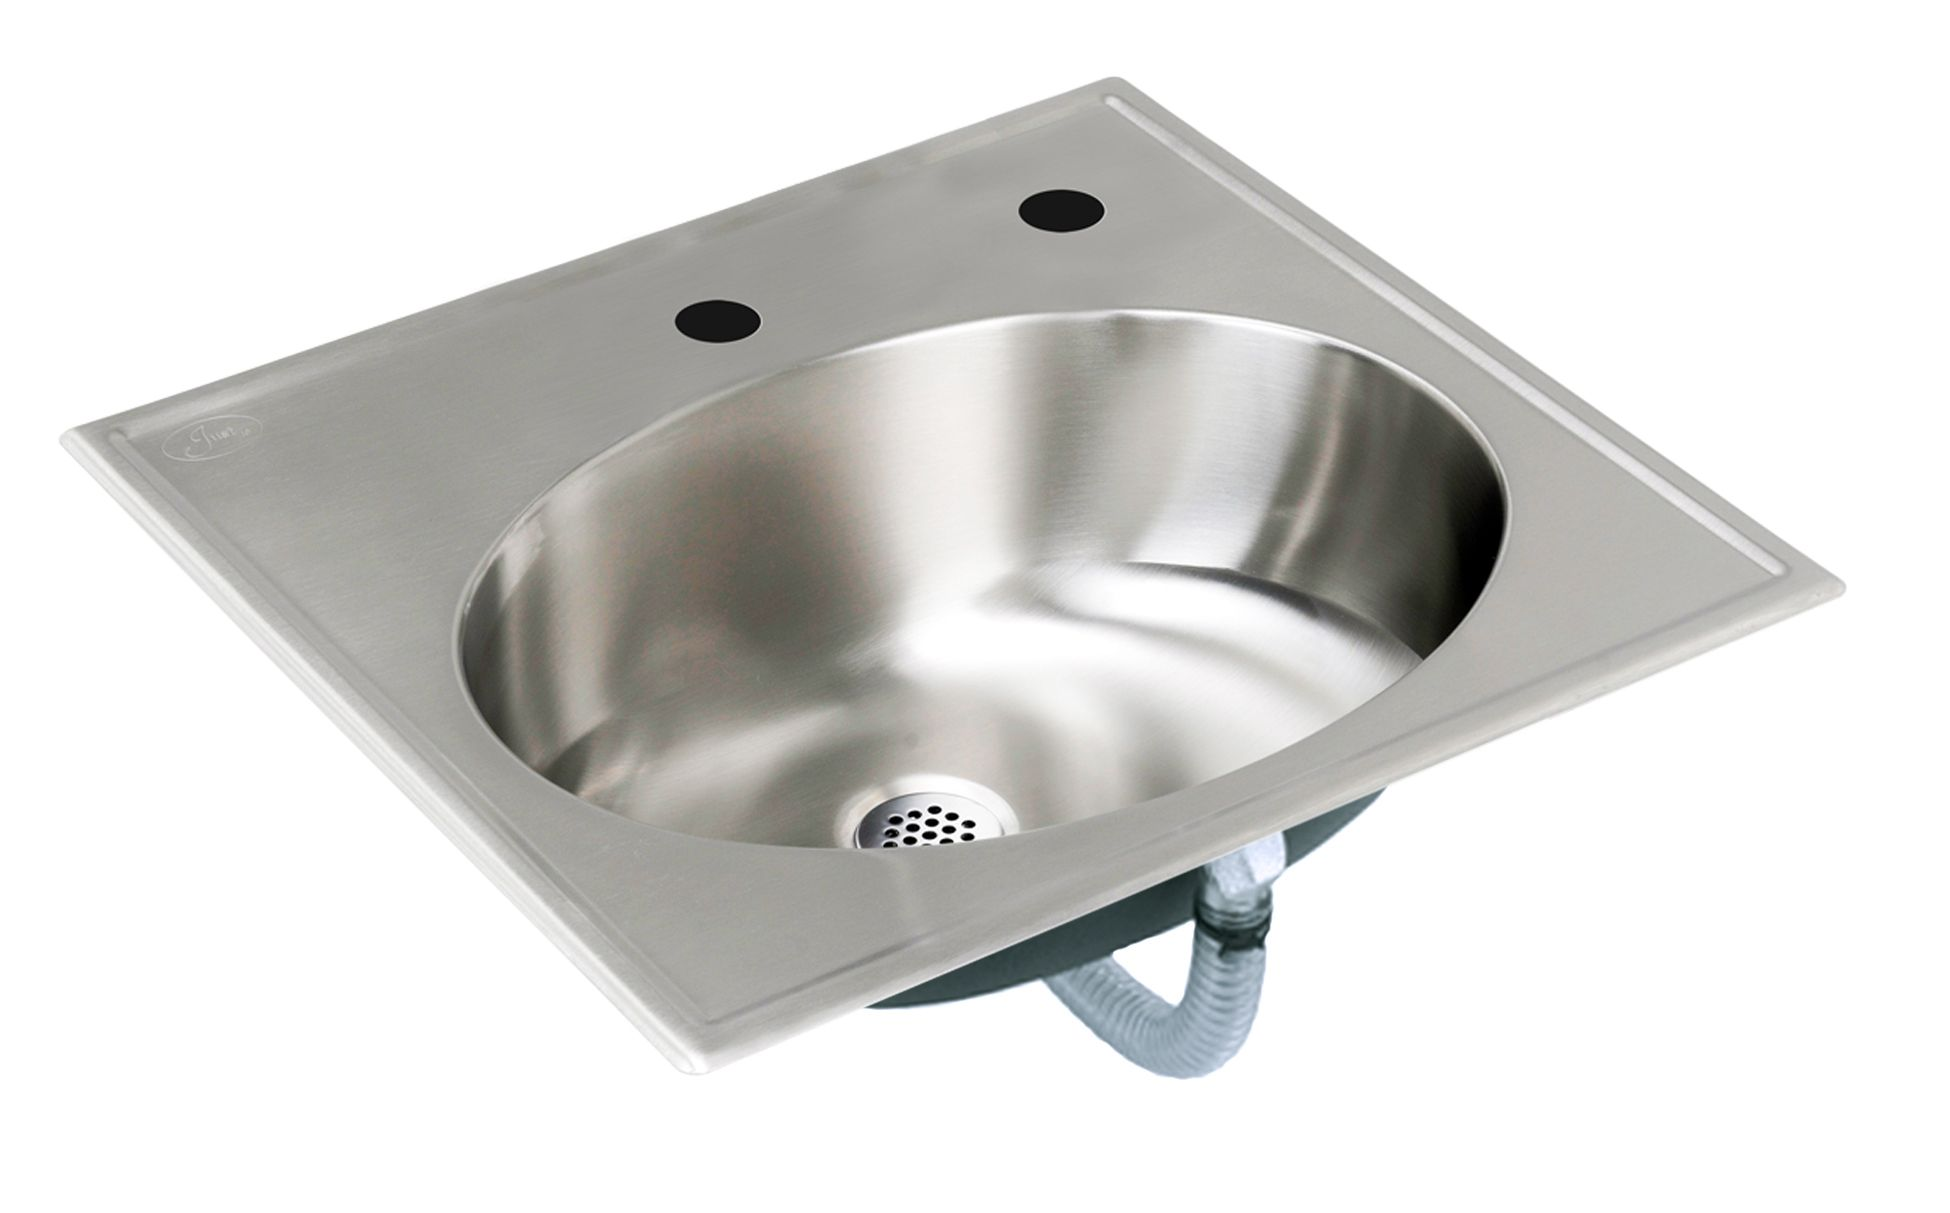 OVAL LAVATORY DROP IN SINK   WITH RECTANGULAR MOUNTING FLANGE   ADA  COMPLIANT   18 GAUGE STAINLESS STEEL